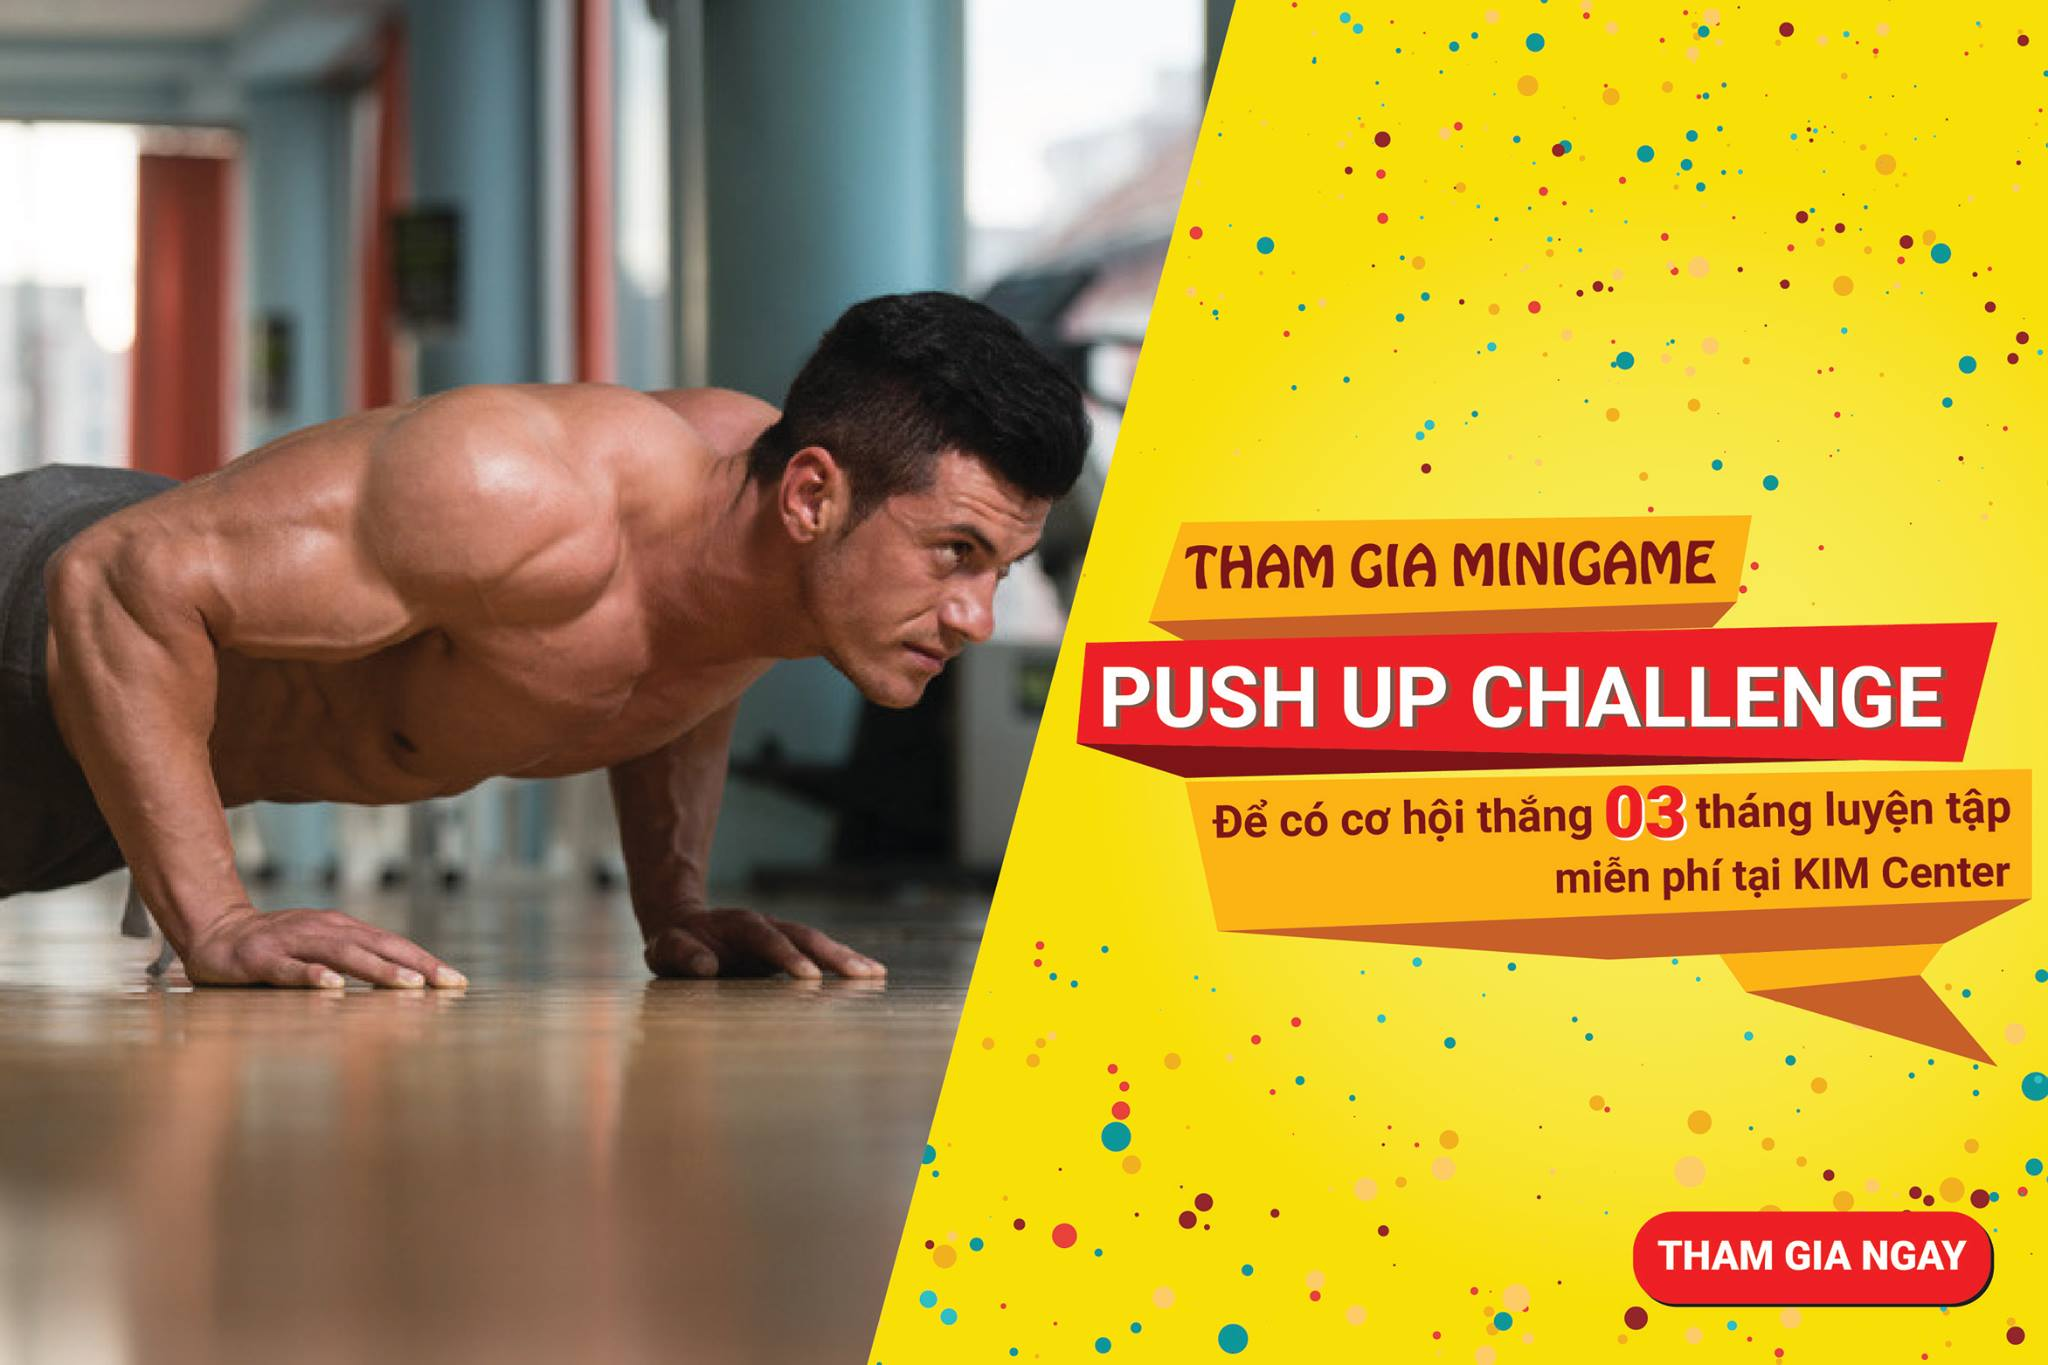 minigame push up